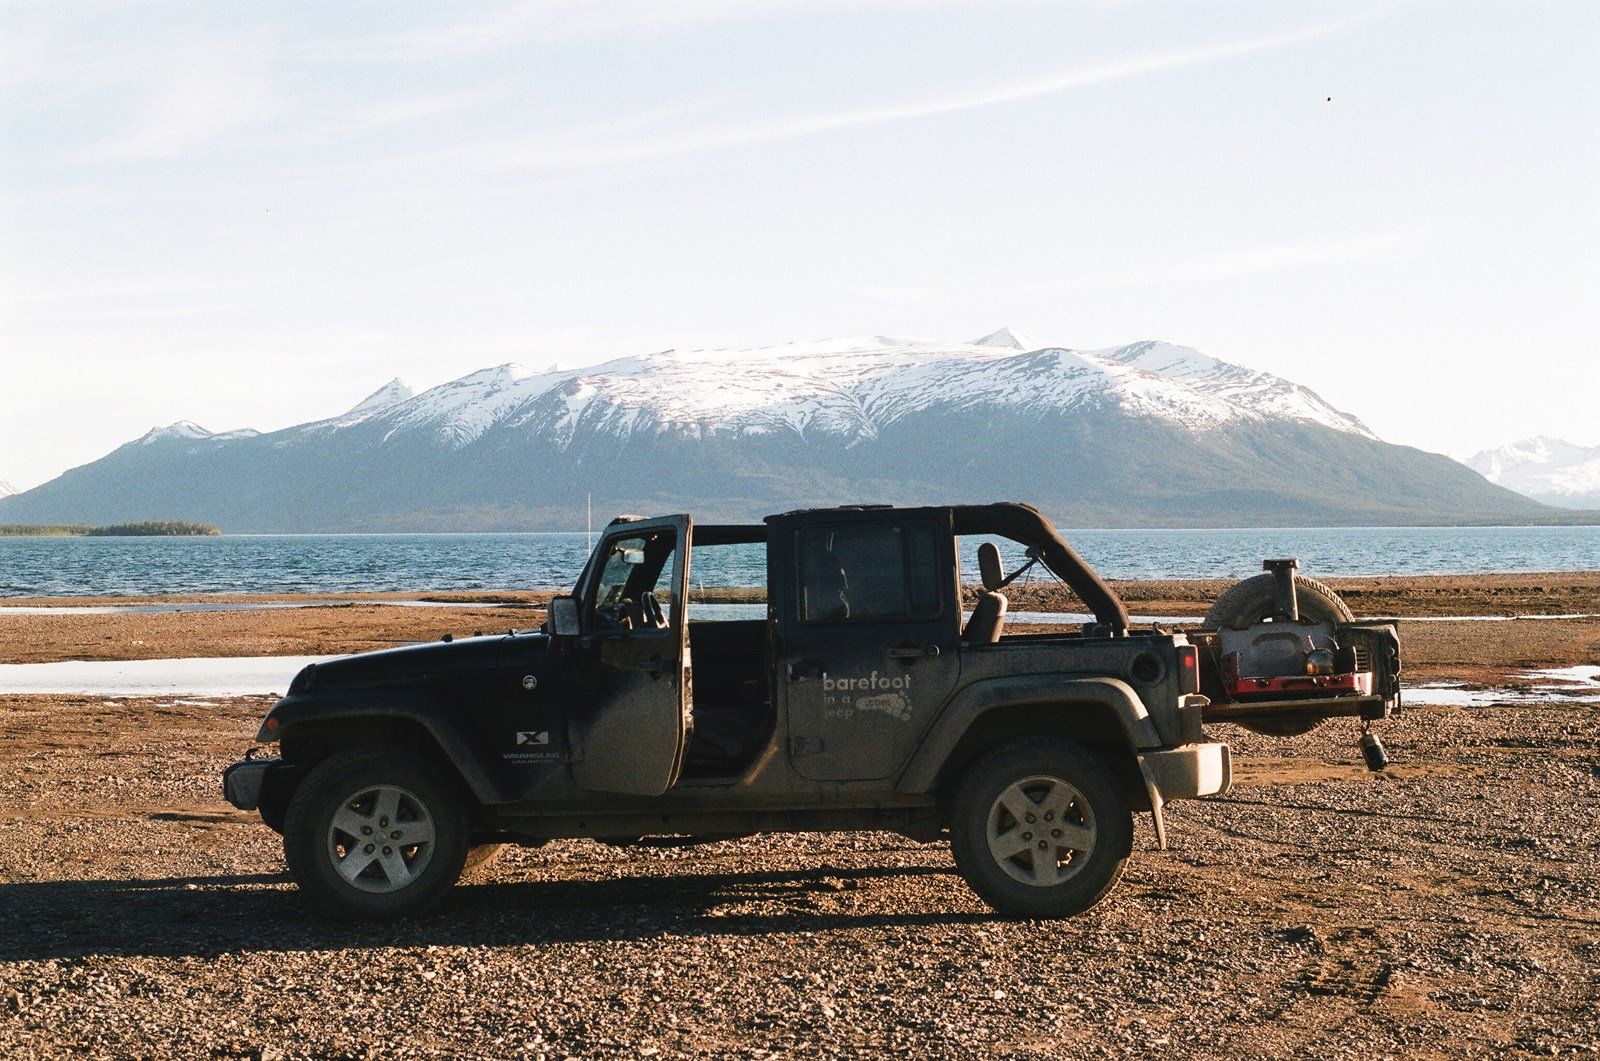 My jeep parked on the Atlin beach in northern British Columbia, Canada. I was making tea on the stove.